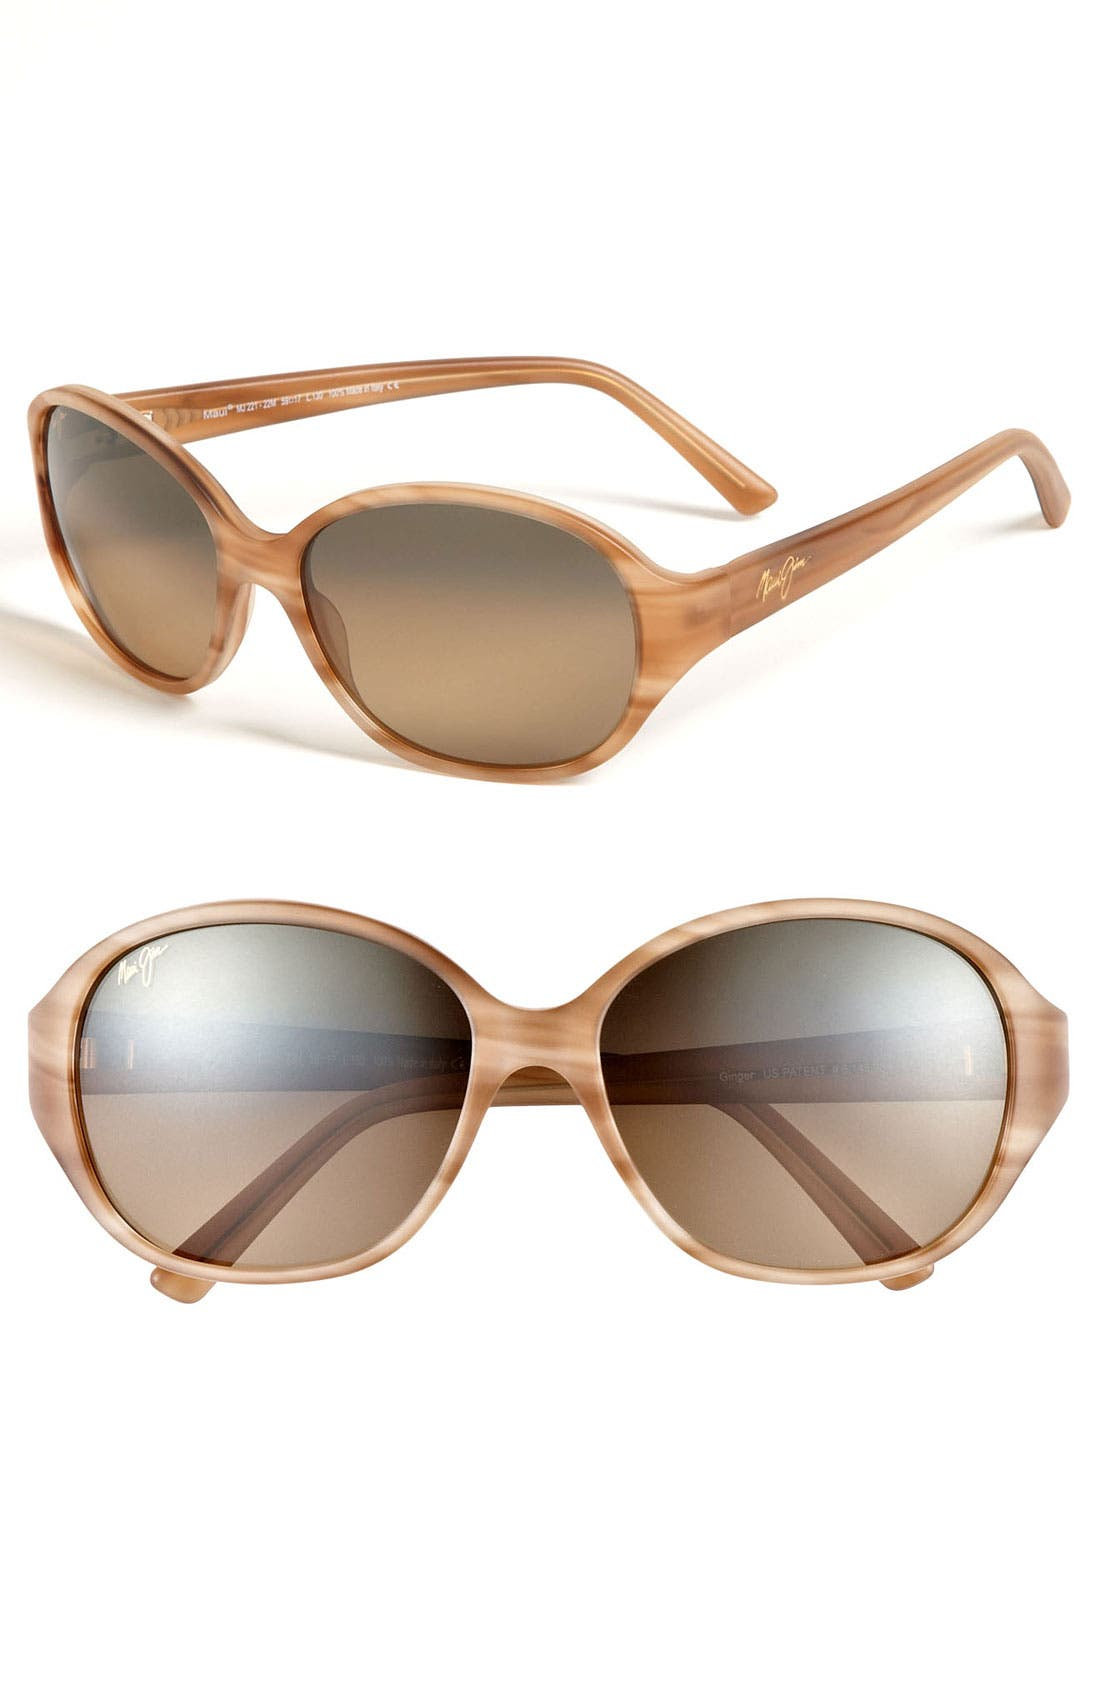 Alternate Image 1 Selected - Maui Jim 'Ginger' 59mm Sunglasses